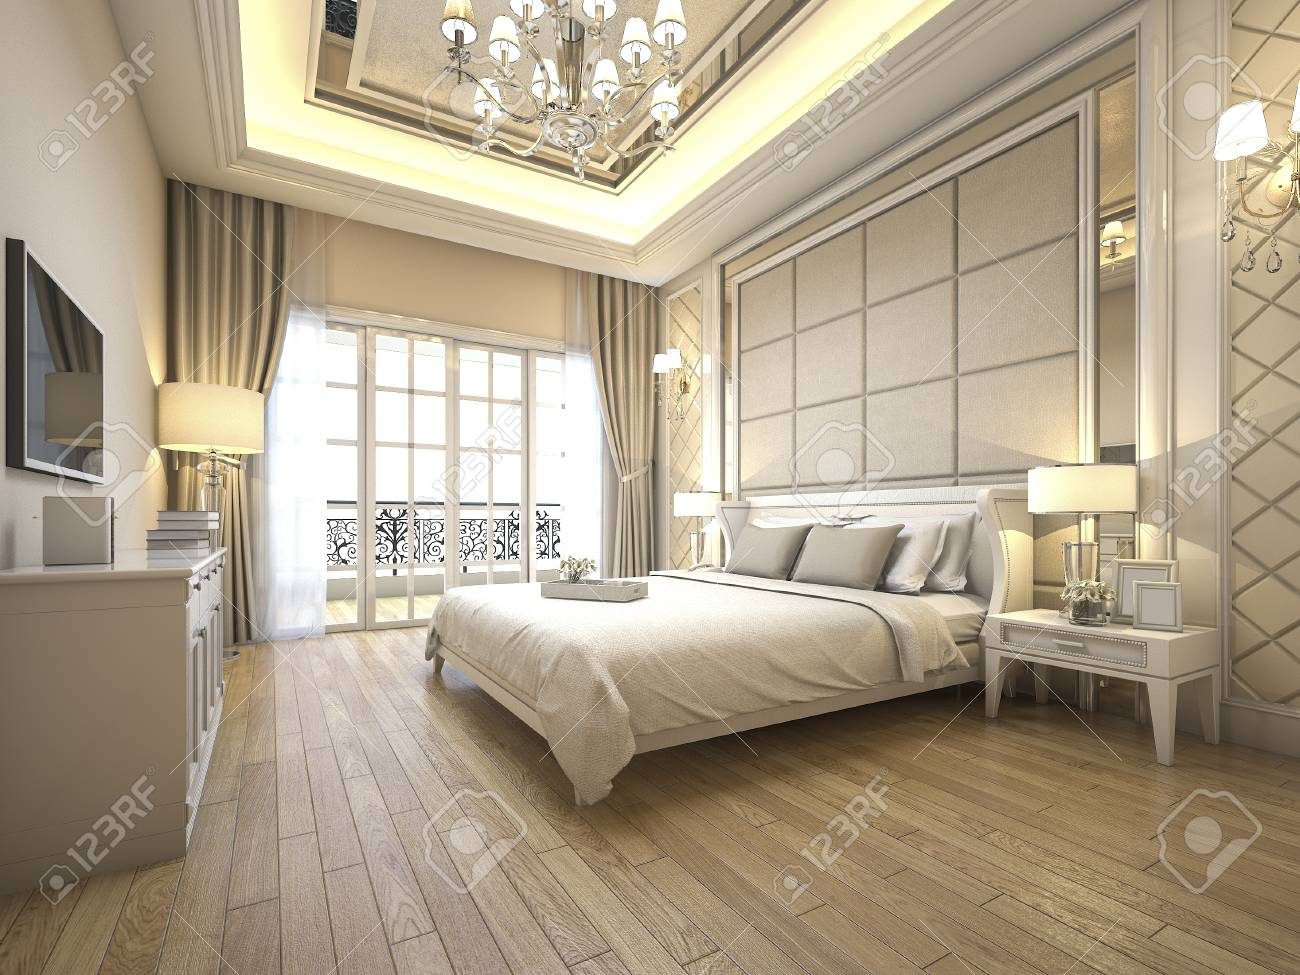 3d Rendering Modern Luxury Classic Bedroom With Marble Decor Stock Photo Picture And Royalty Free Image Image 94916046